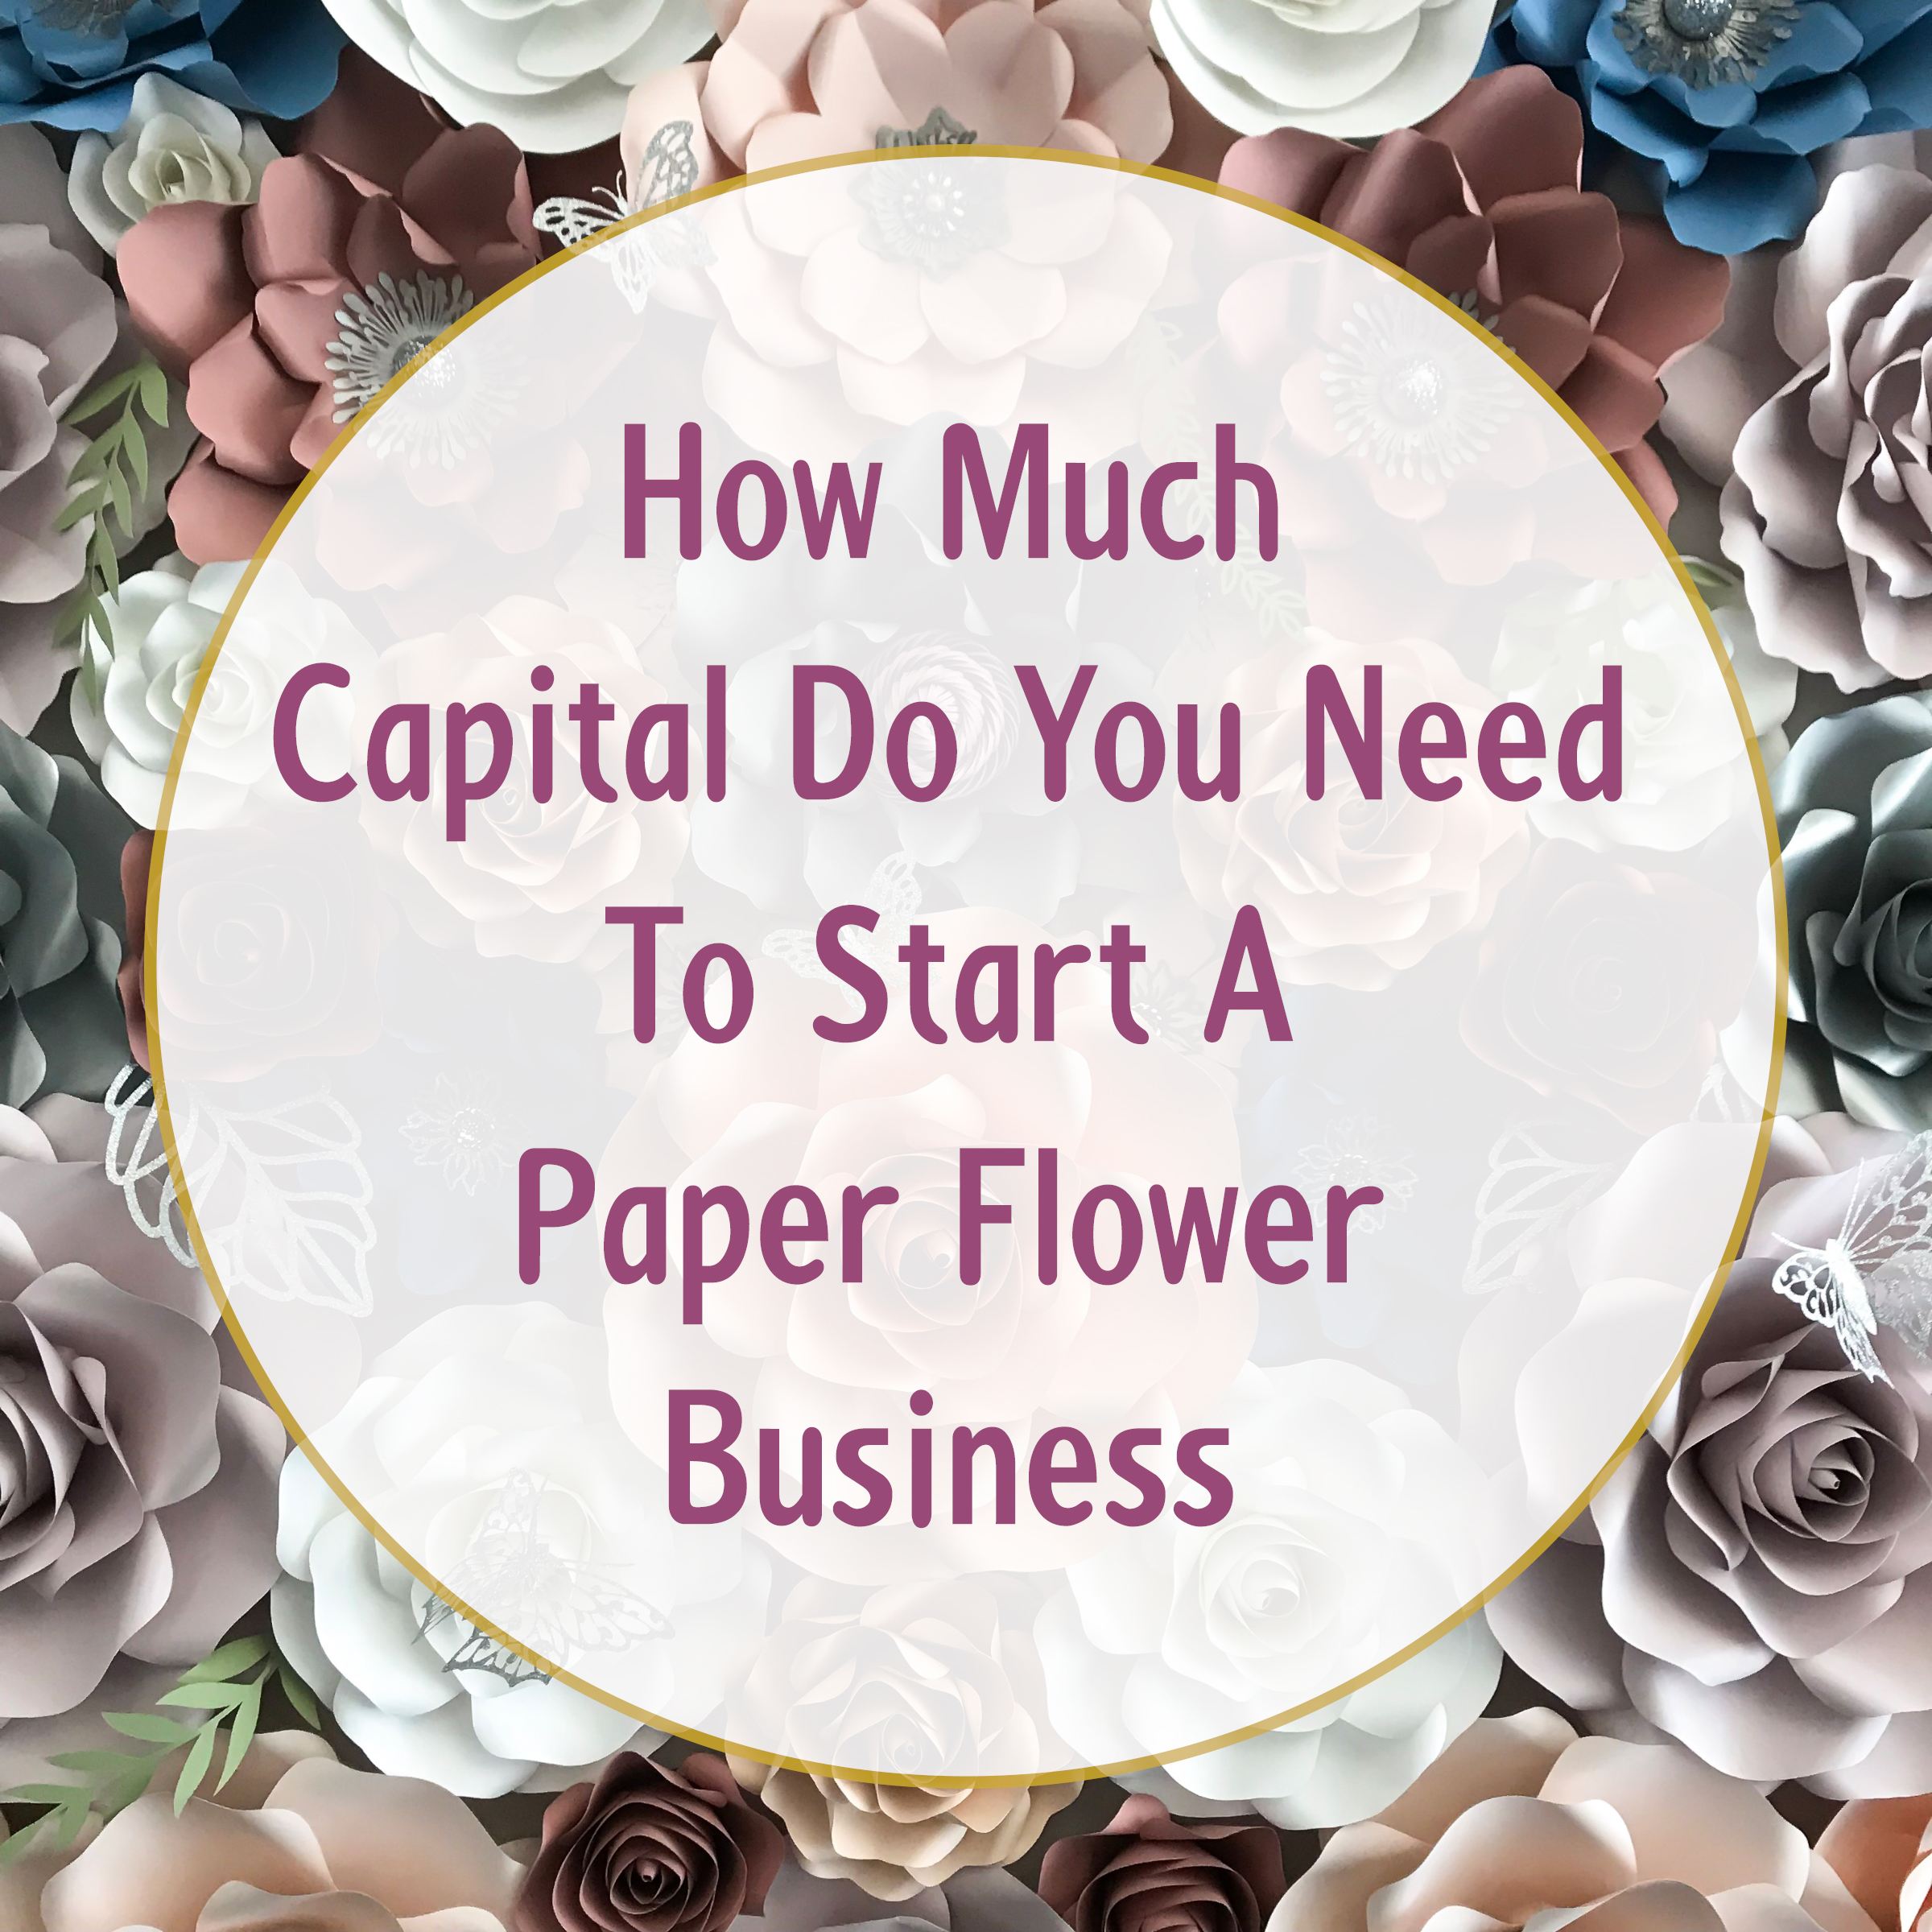 Starting a paper flower business how much capital amount do you starting a paper flower business how much capital amount do you need paper flower templates by the crafty sagittarius mightylinksfo